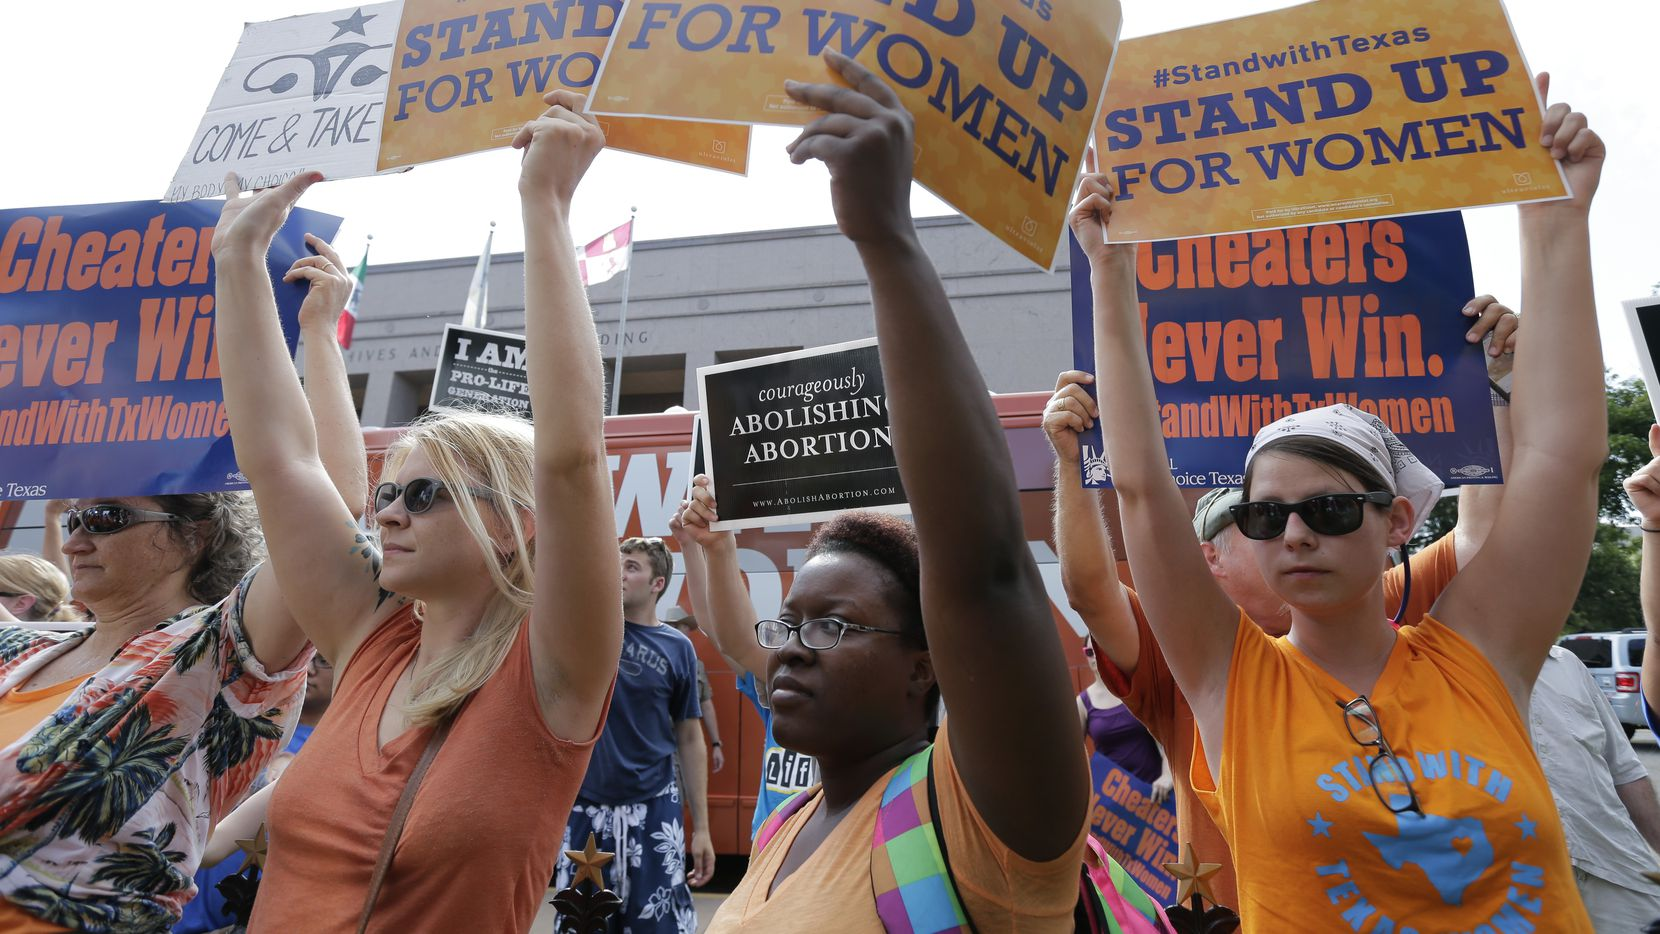 FILE - In this July 9, 2013, file photo, opponents and supporters of an abortion bill hold signs near a news conference outside the Texas Capitol, in Austin, Texas. A sharply divided Supreme Court on Tuesday, Nov. 19, 2013, allowed Texas to continue enforcing abortion restrictions that opponents say have led more than a third of the state's clinics to stop providing abortions. (AP Photo/Eric Gay, File)